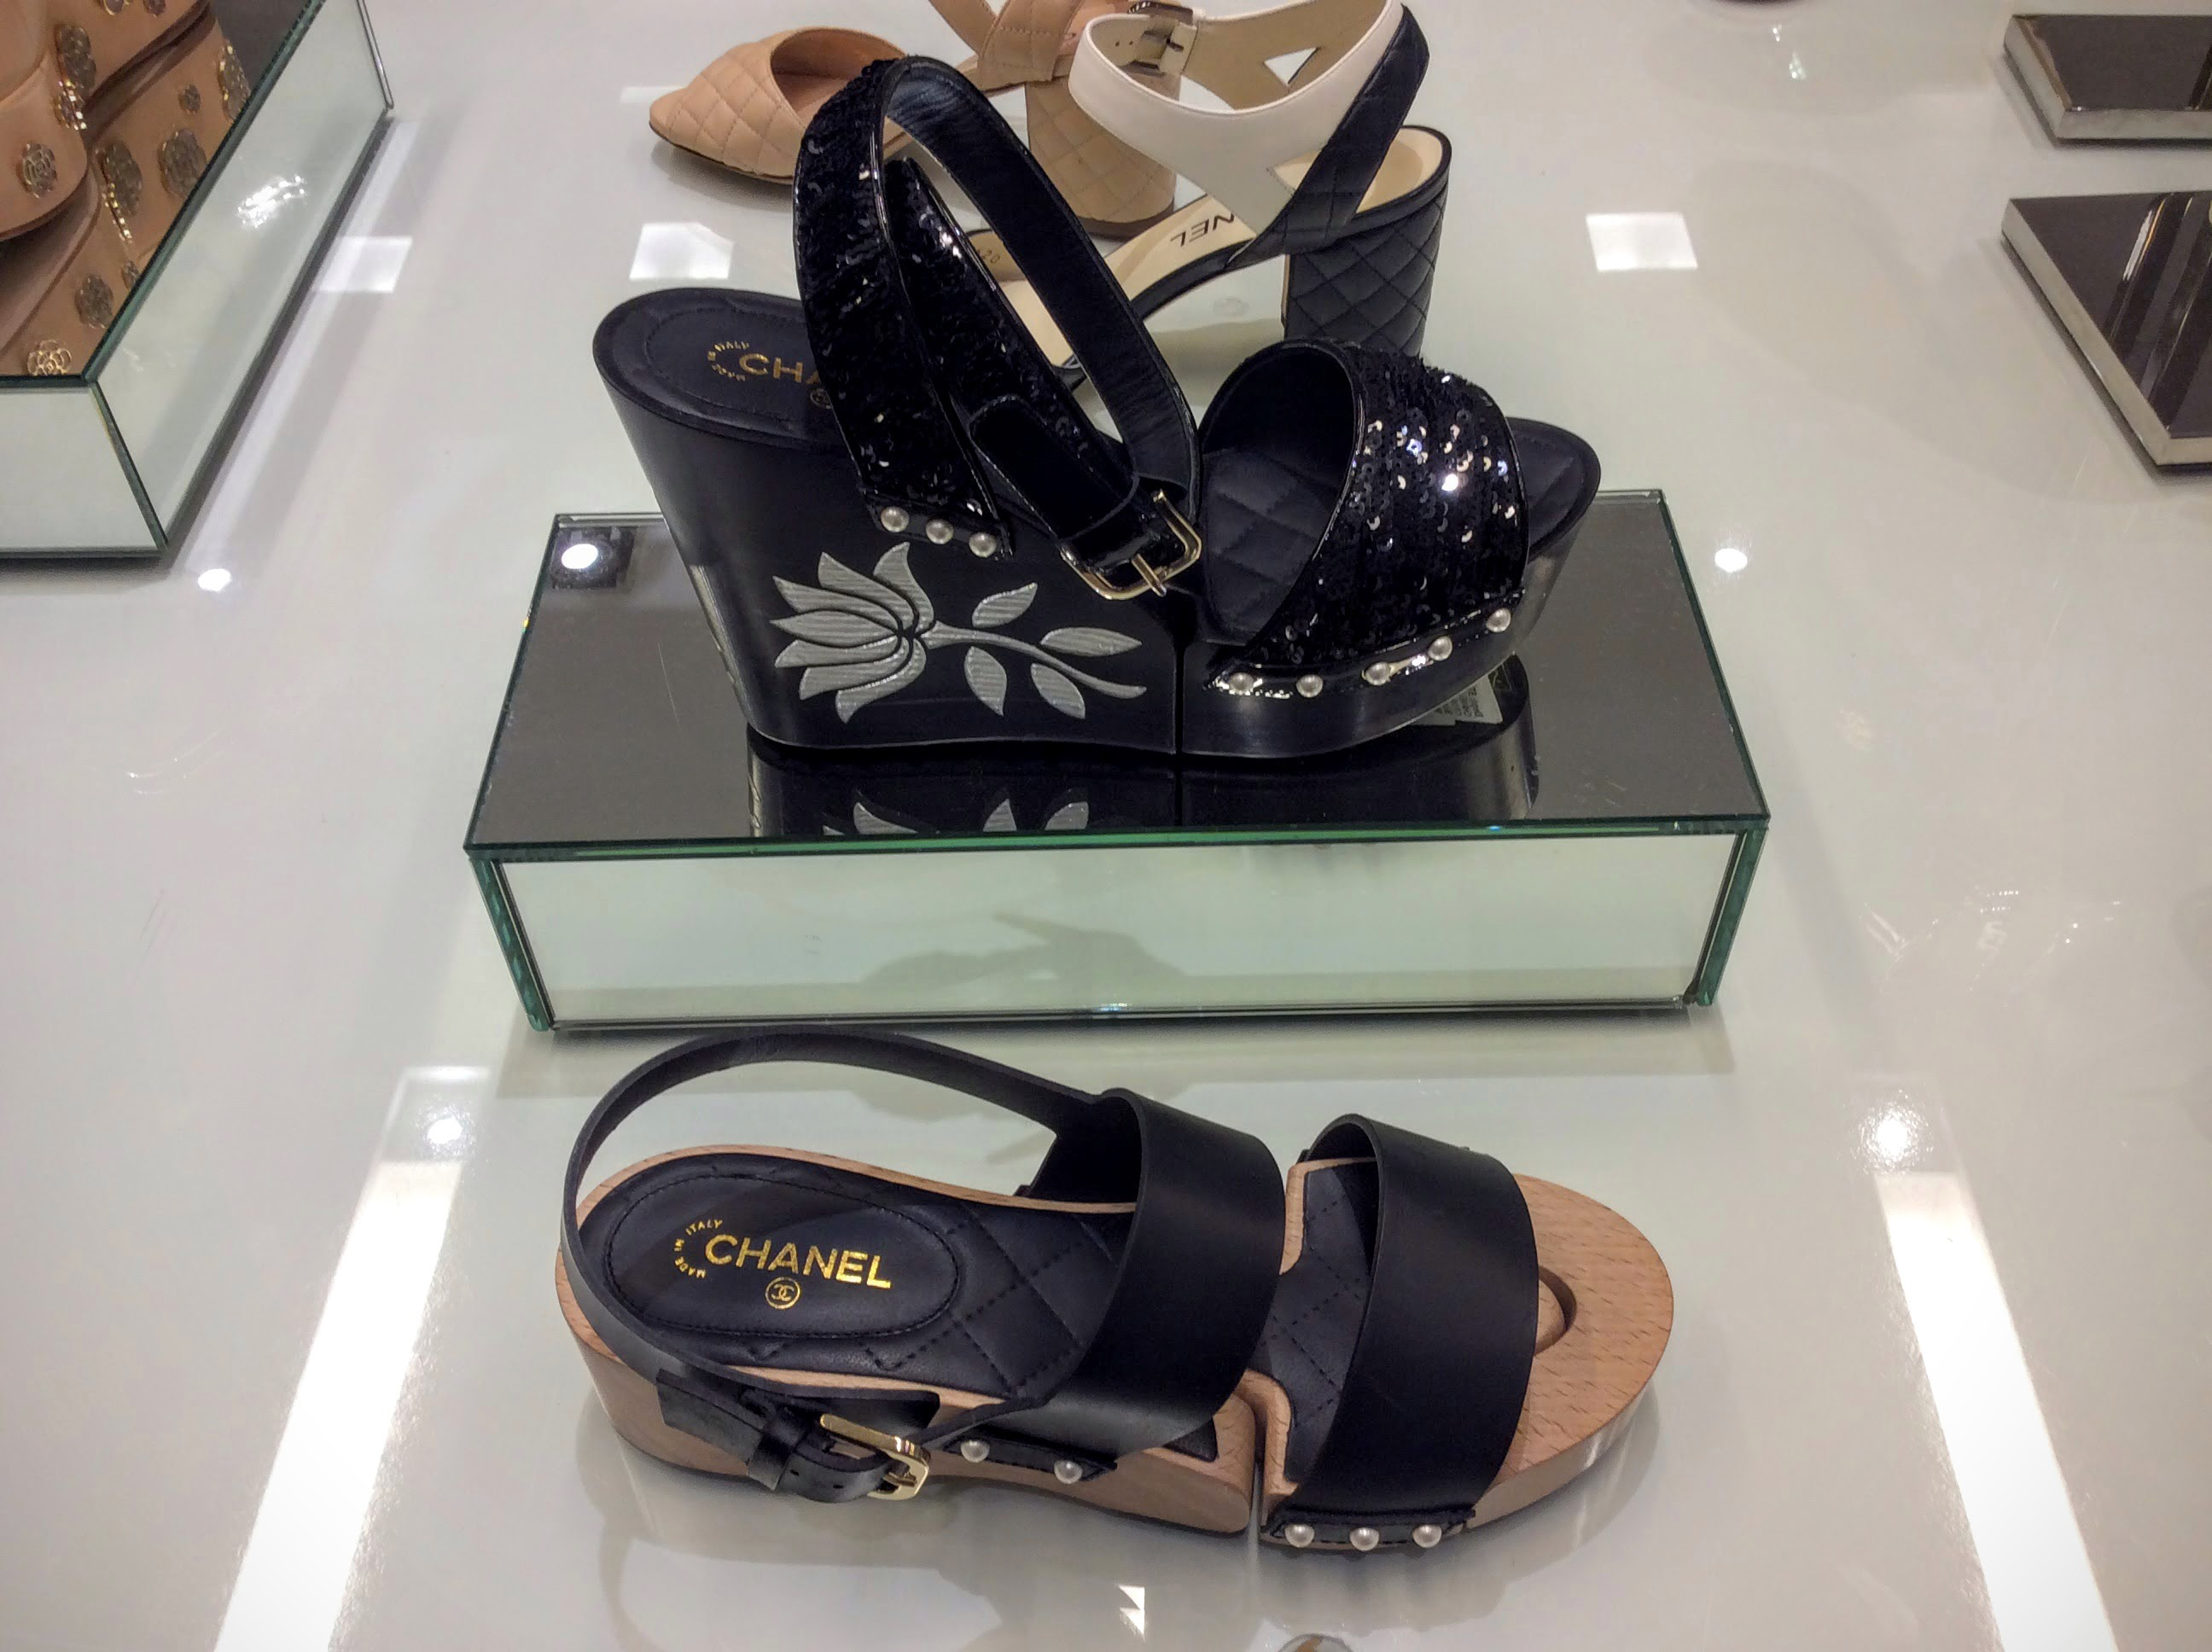 ce7f30673af78e Chanel Shoes | In-Store Trends at Bloomingdale's - Fashion Trendsetter